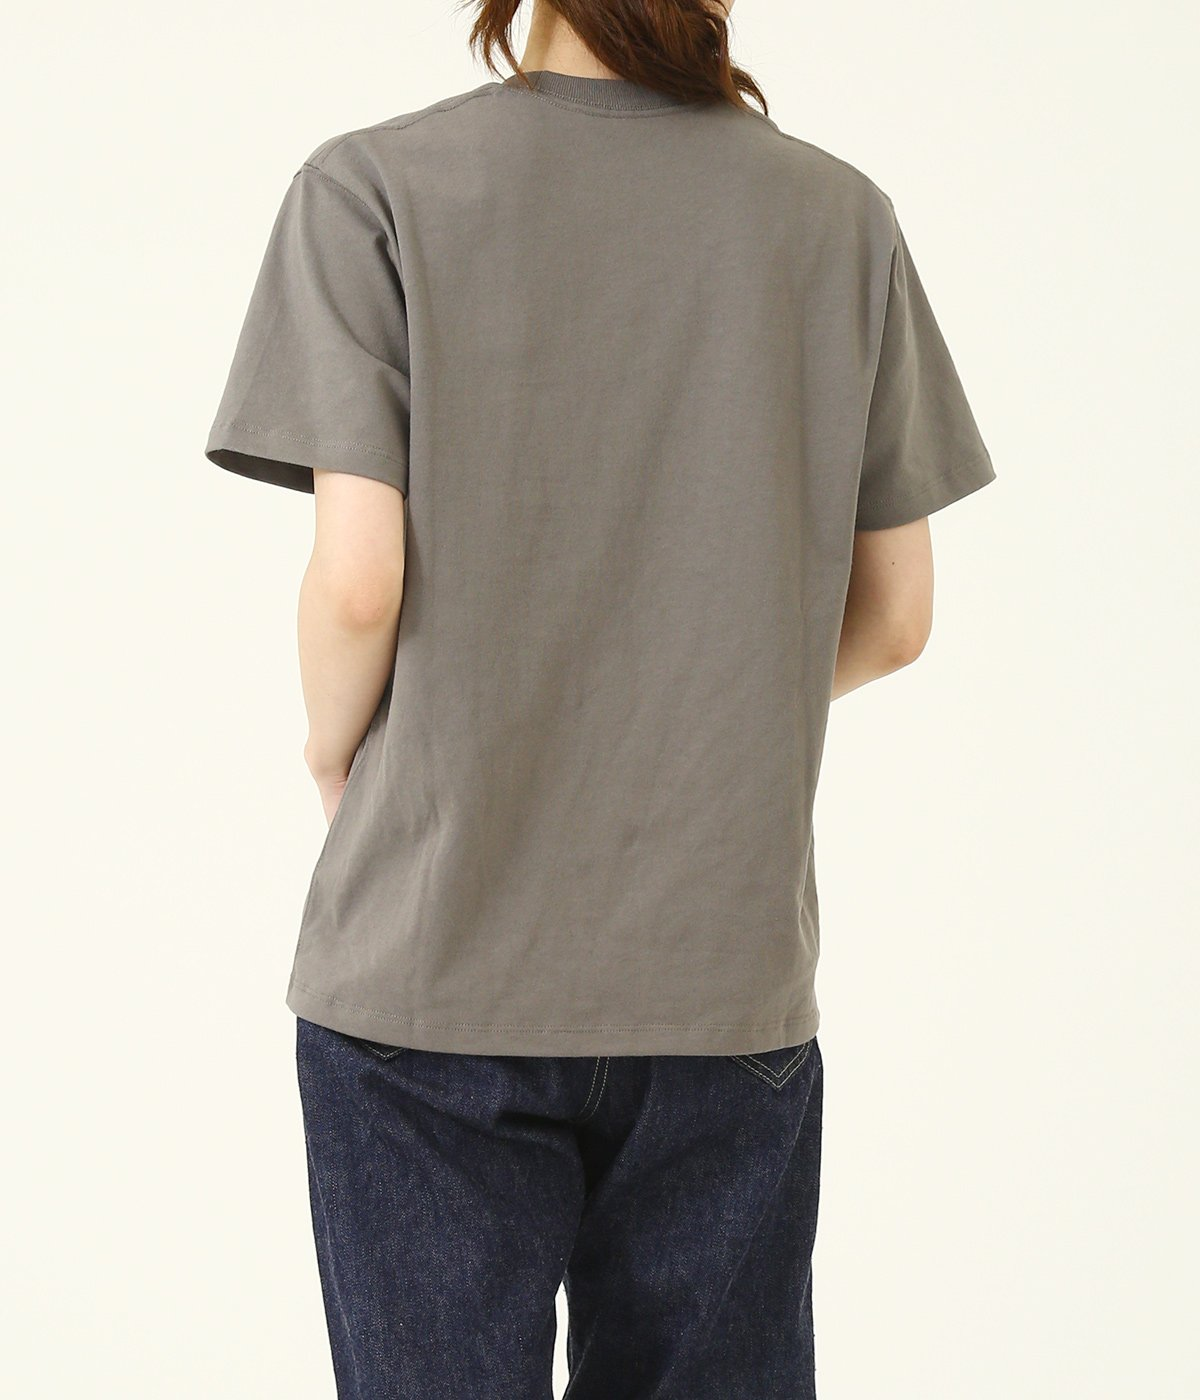 CREW NECK POCKET T-SHIRT (14/-空紡天竺)